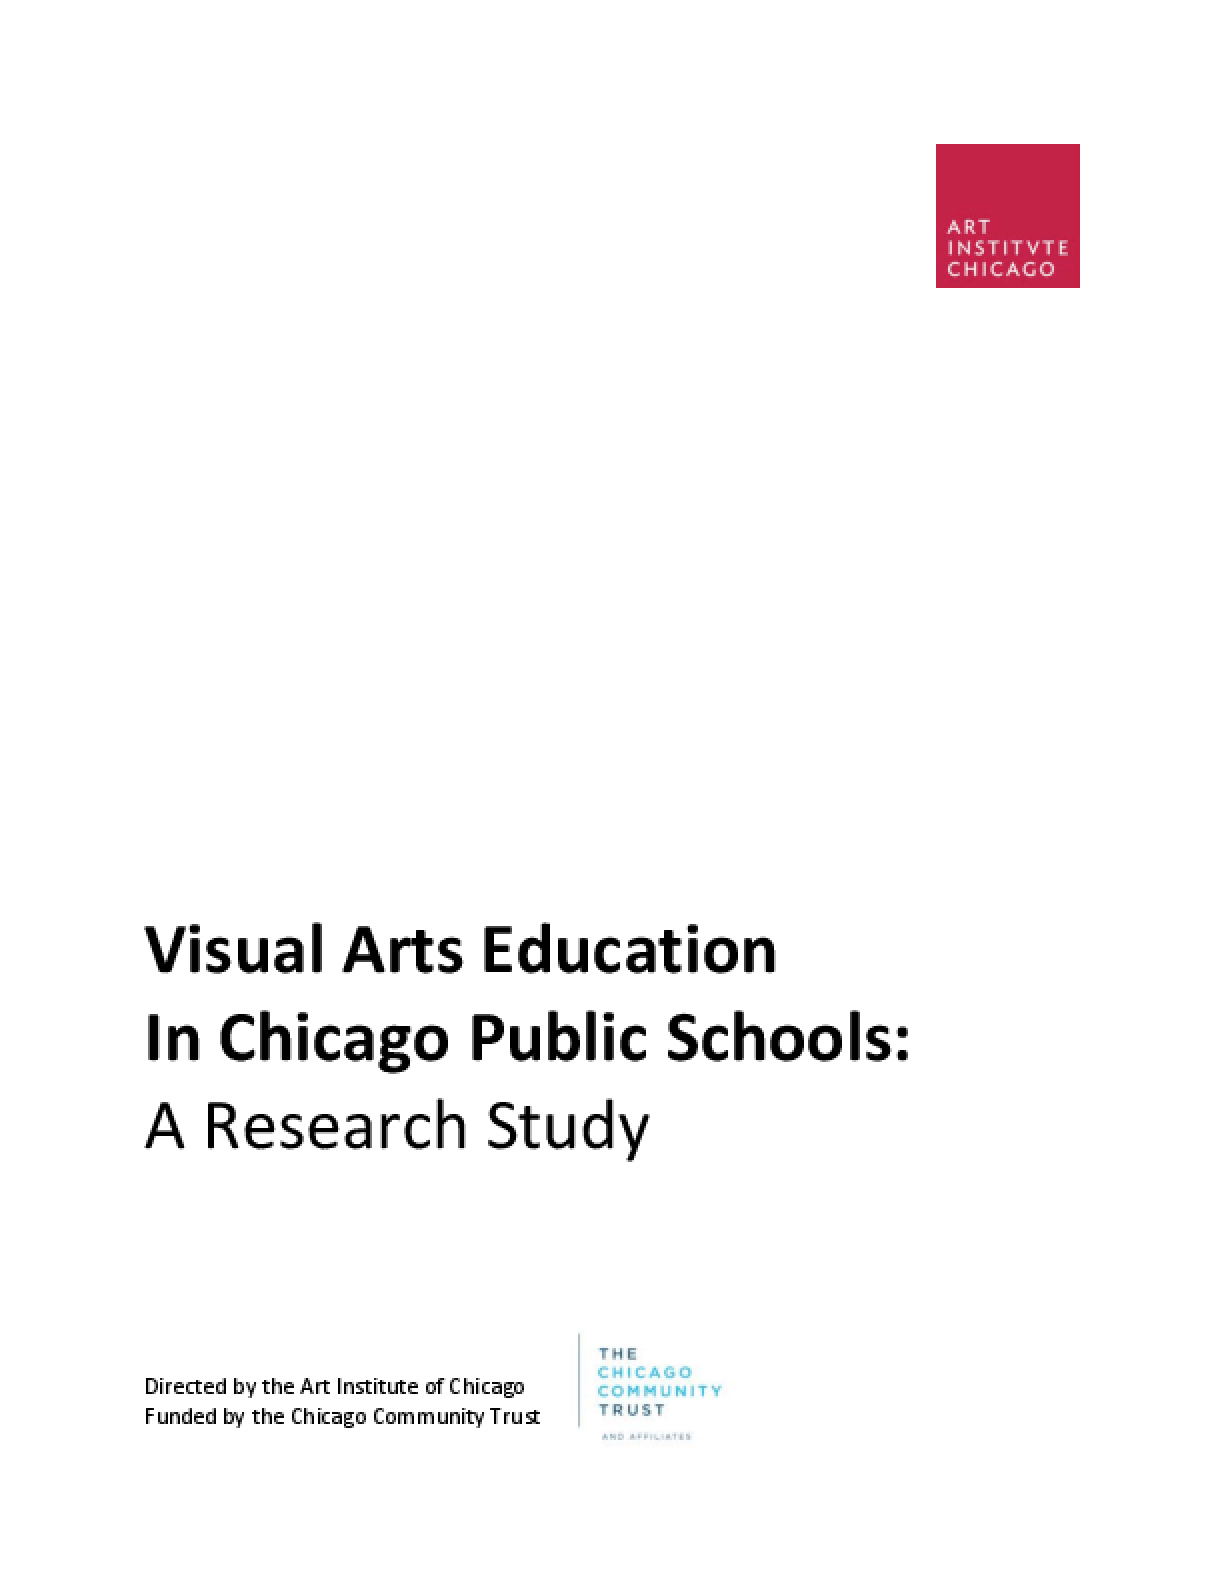 Visual Arts Education in Chicago Public Schools: A Research Study